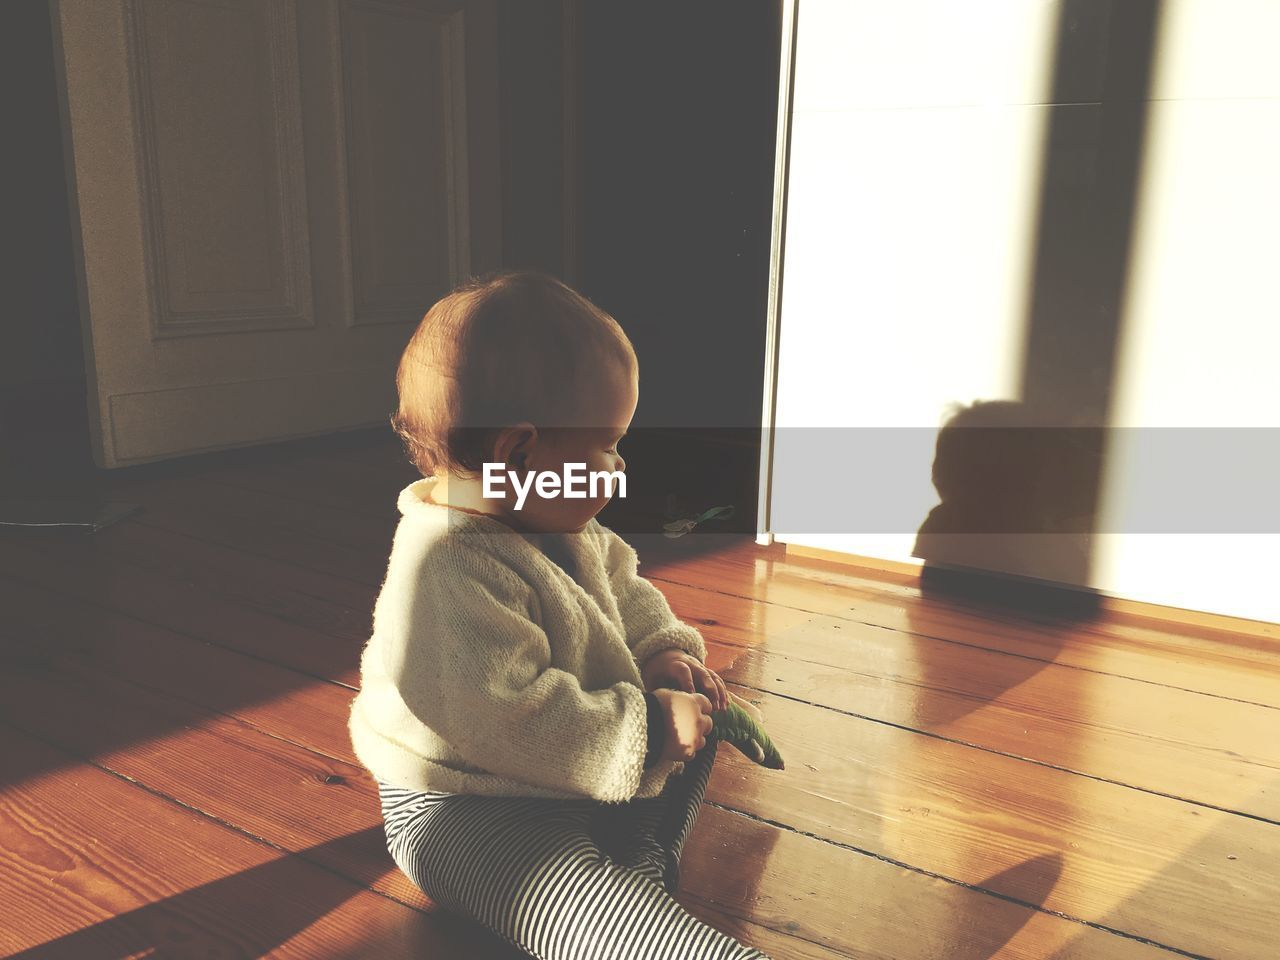 indoors, baby, hardwood floor, one person, innocence, childhood, babyhood, toddler, home interior, real people, cute, sunlight, shadow, sitting, day, babies only, people